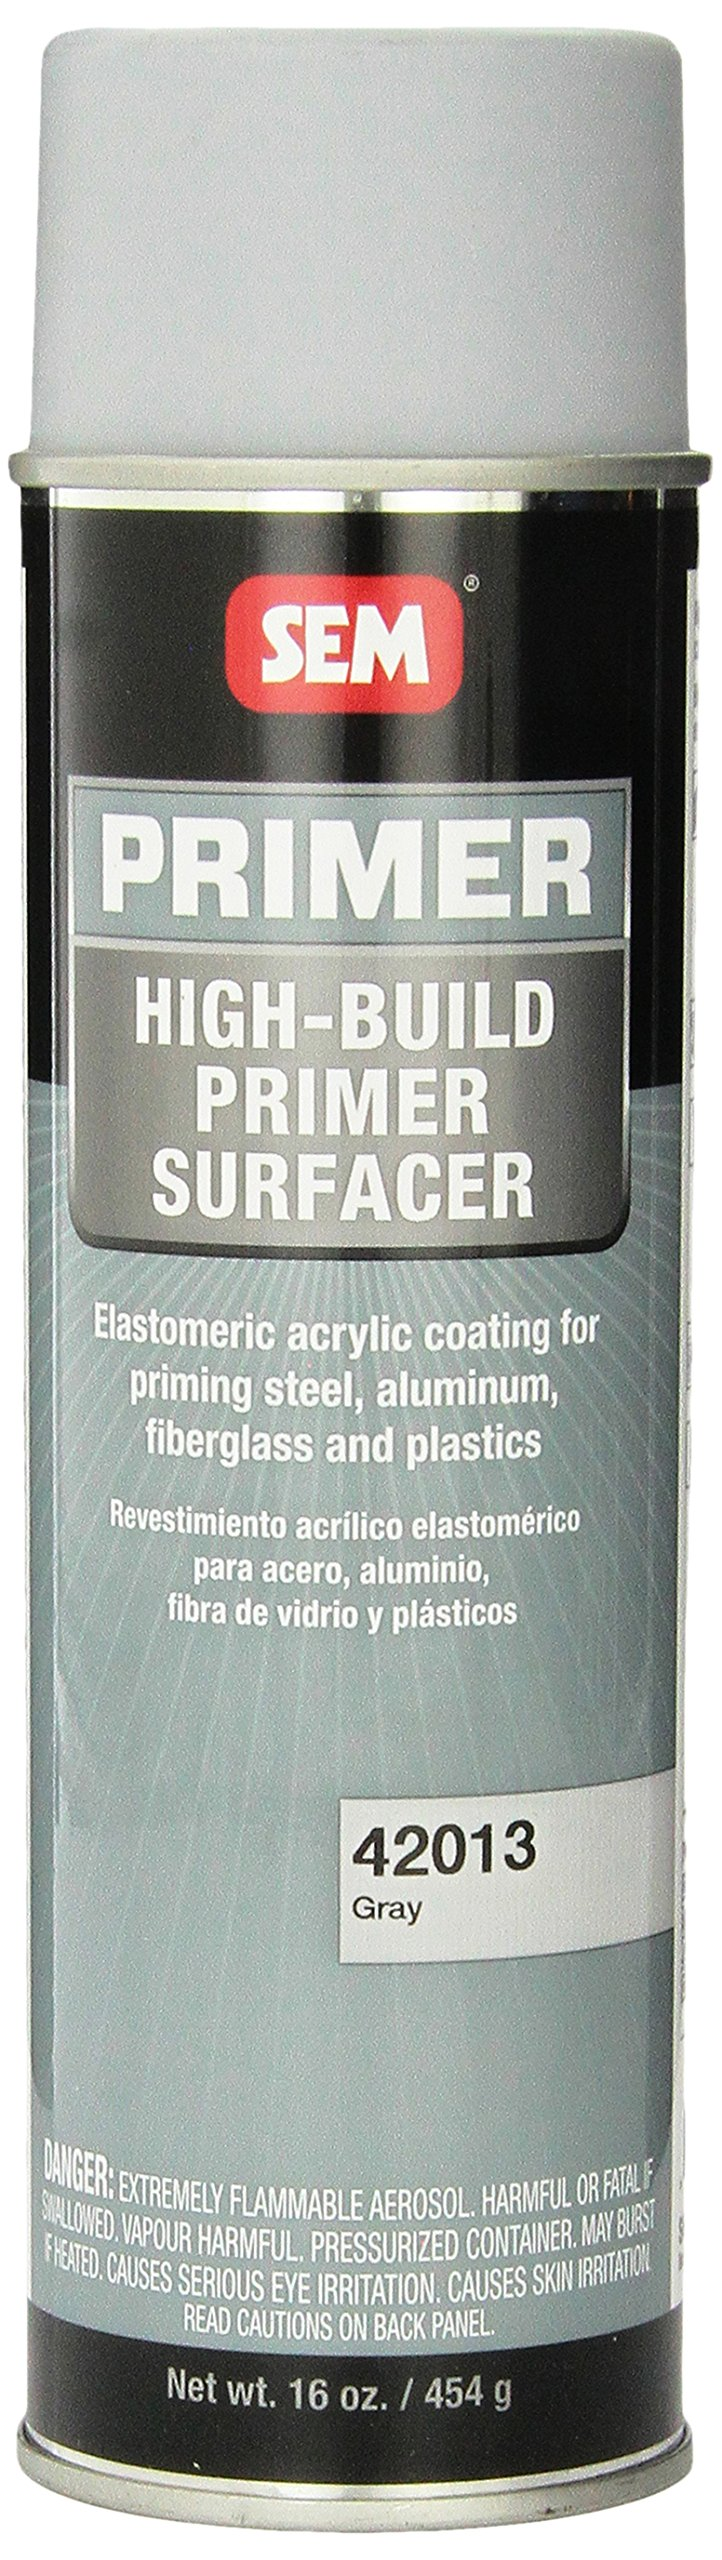 Sem Paints SEM42013 Highbuild Primer Surfacer Gray Walmartcom